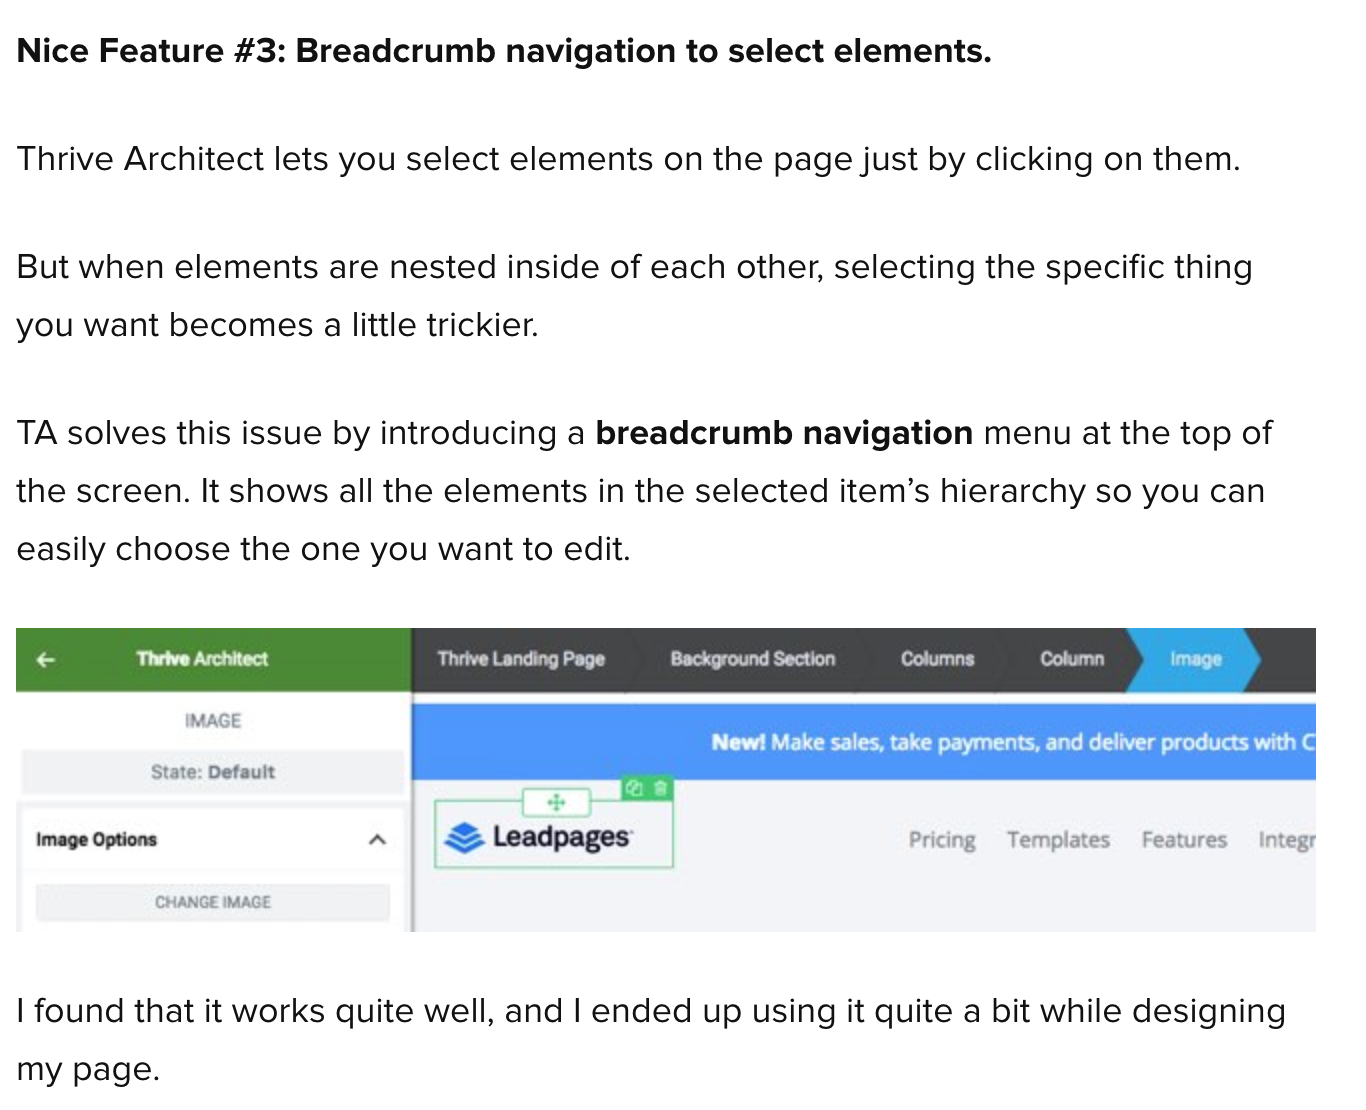 Feature Request - Breadcrumbs navigation of sections/rows